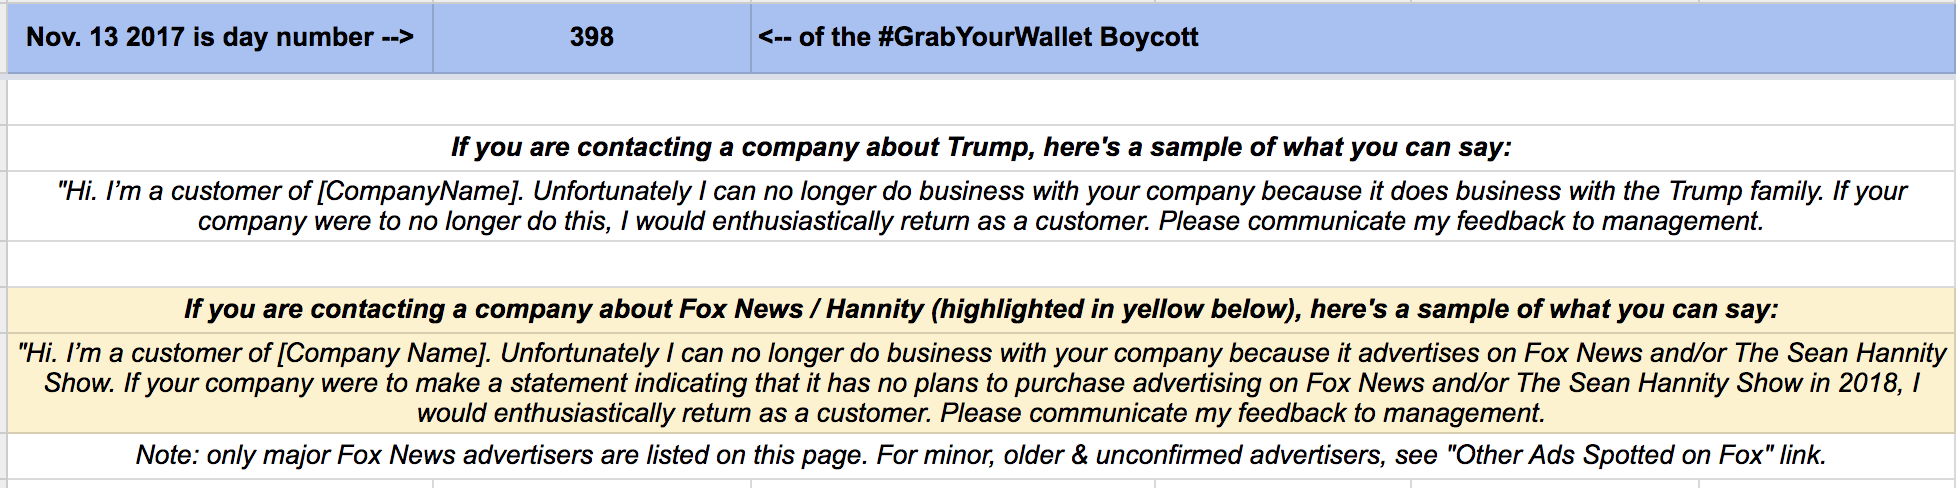 (Screenshot/GrabYourWallet.Org)